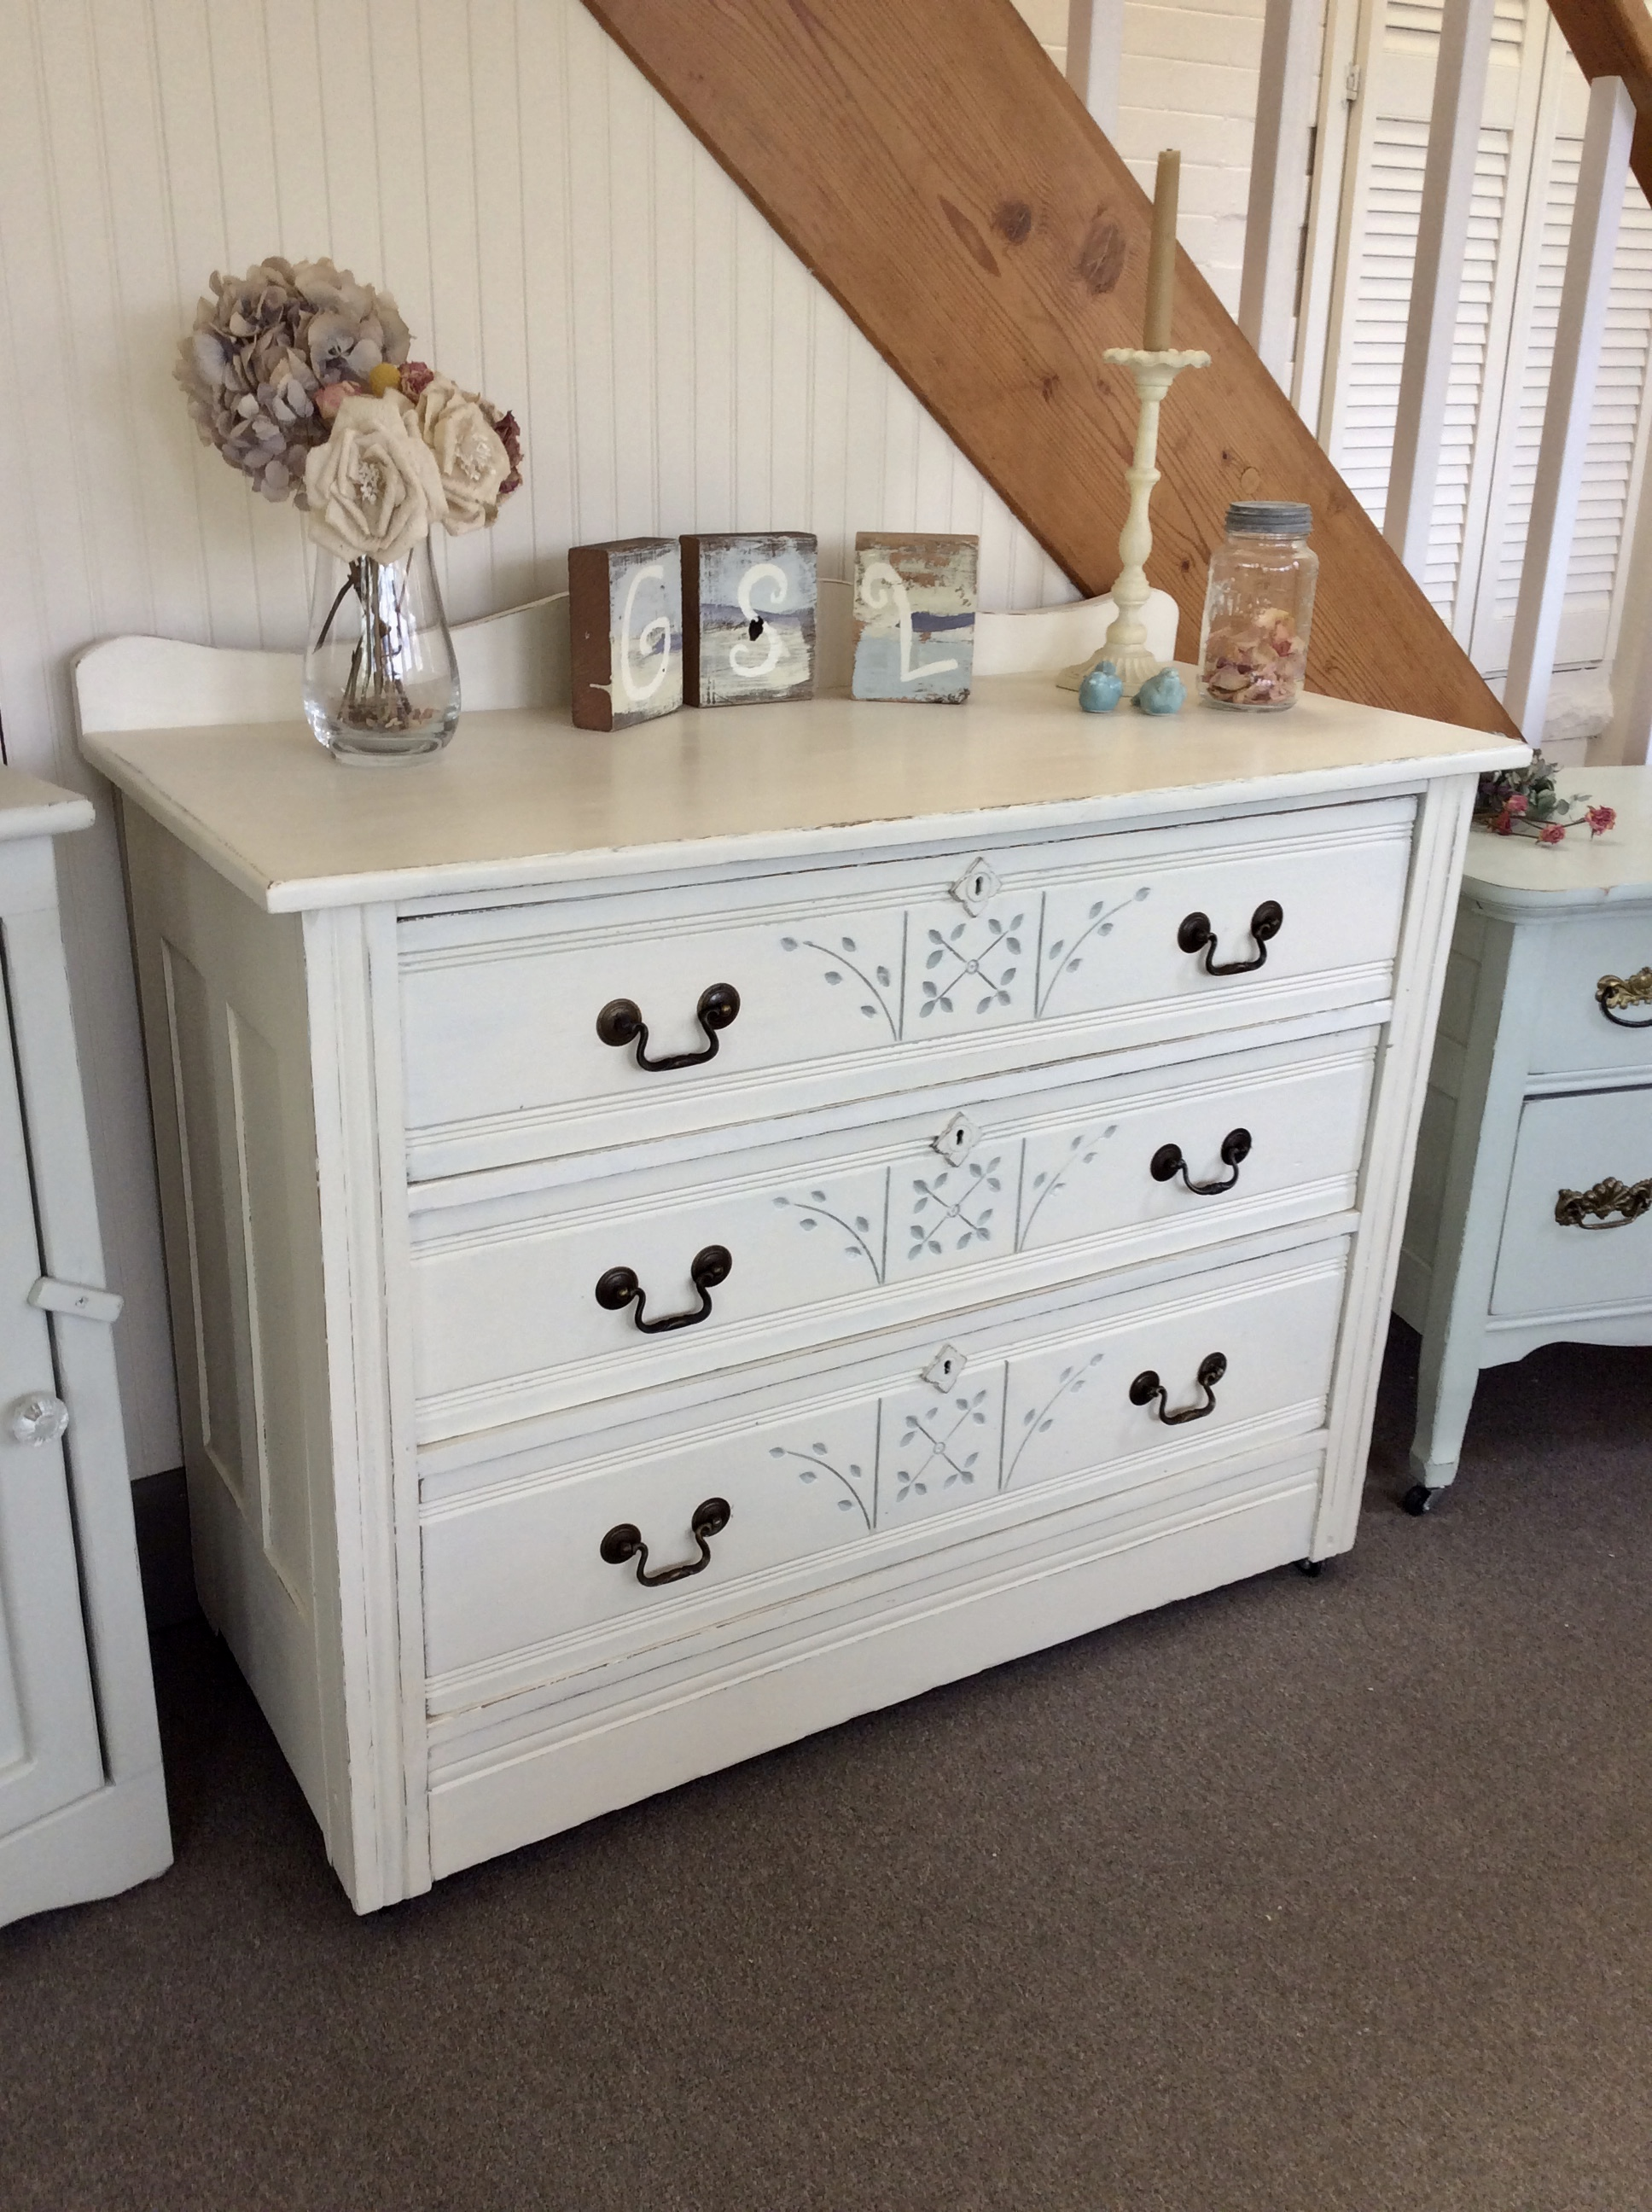 Vintage Eastlake Dresser A Bit Shabby,How To Get Rid Of Sugar Ants In House